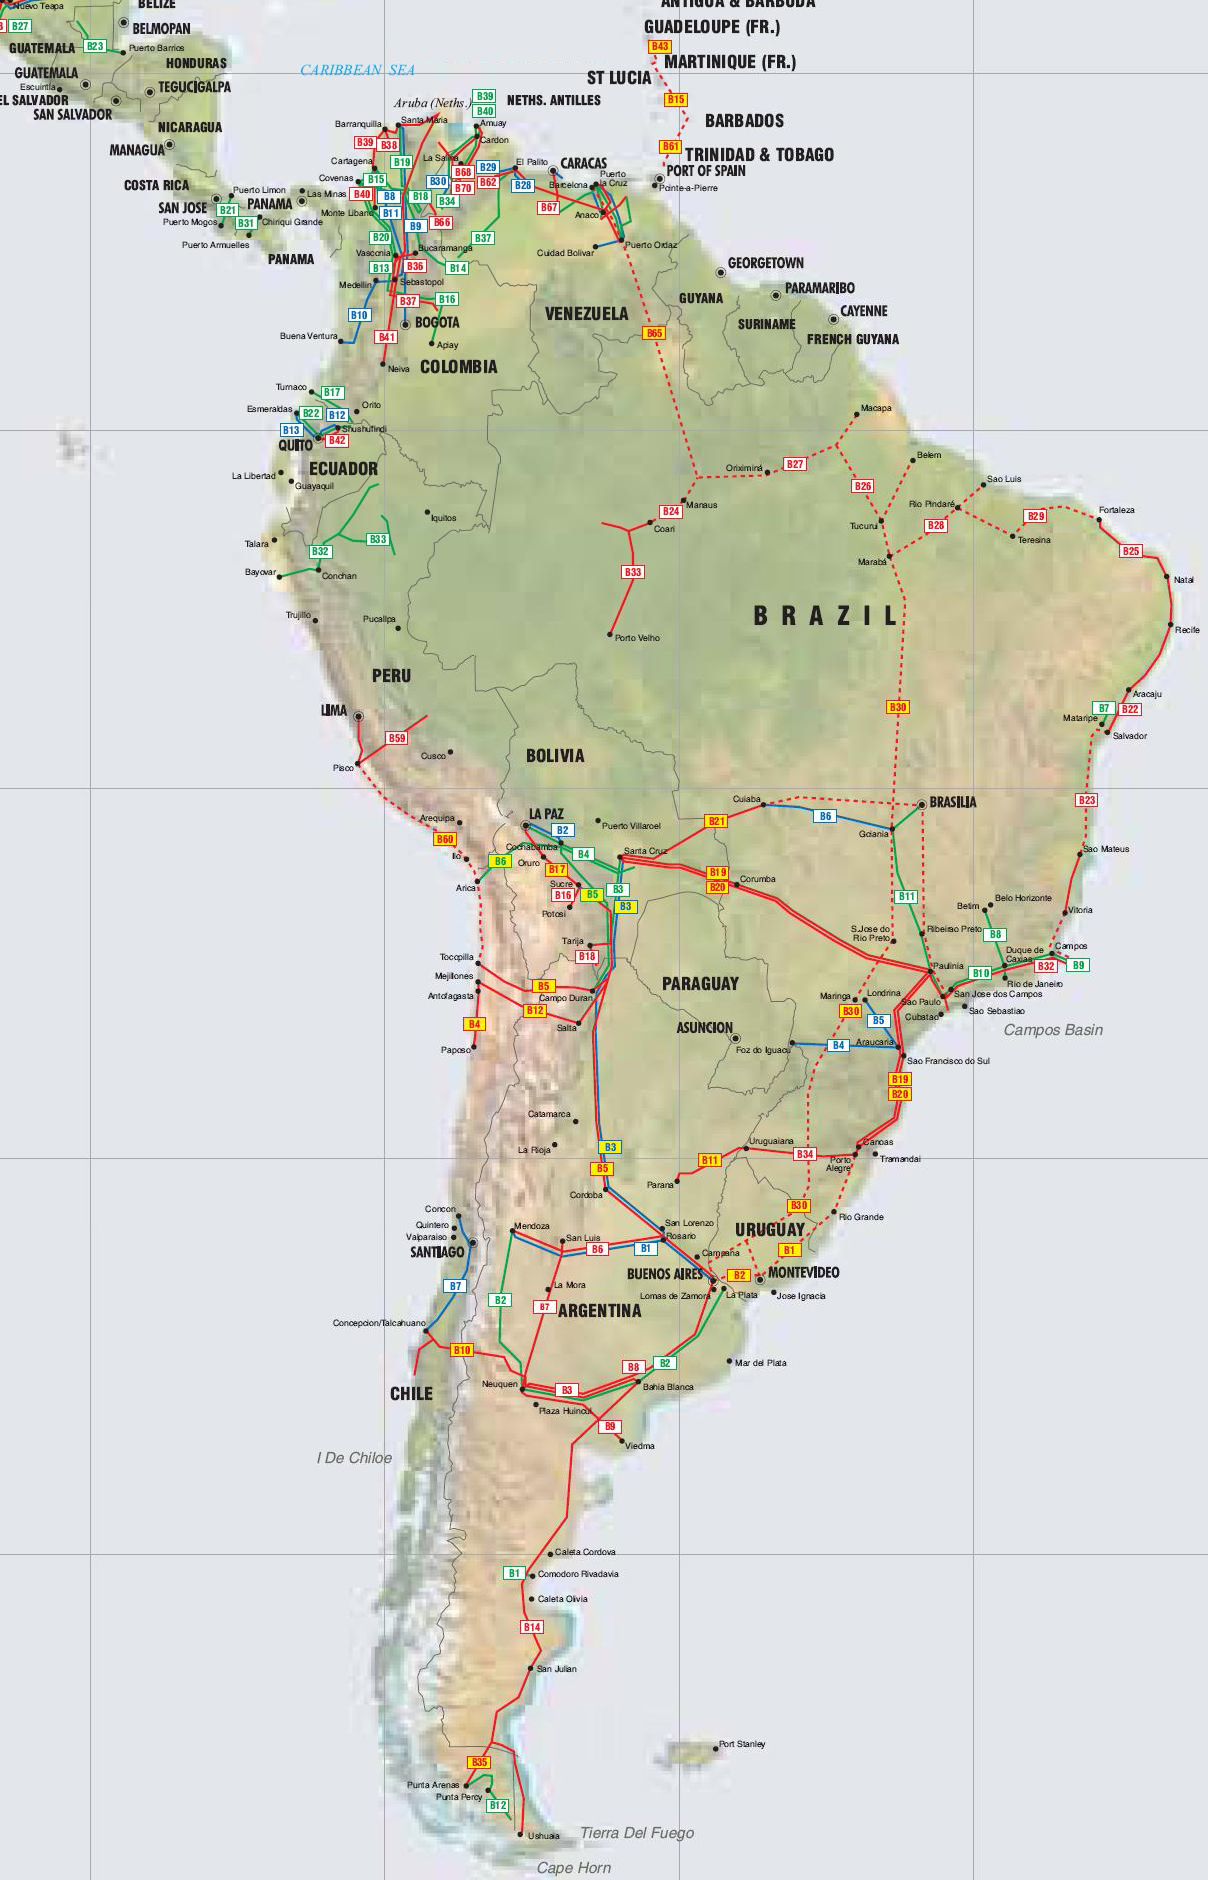 Central America Caribbean and South America Pipelines map Crude Oil petro